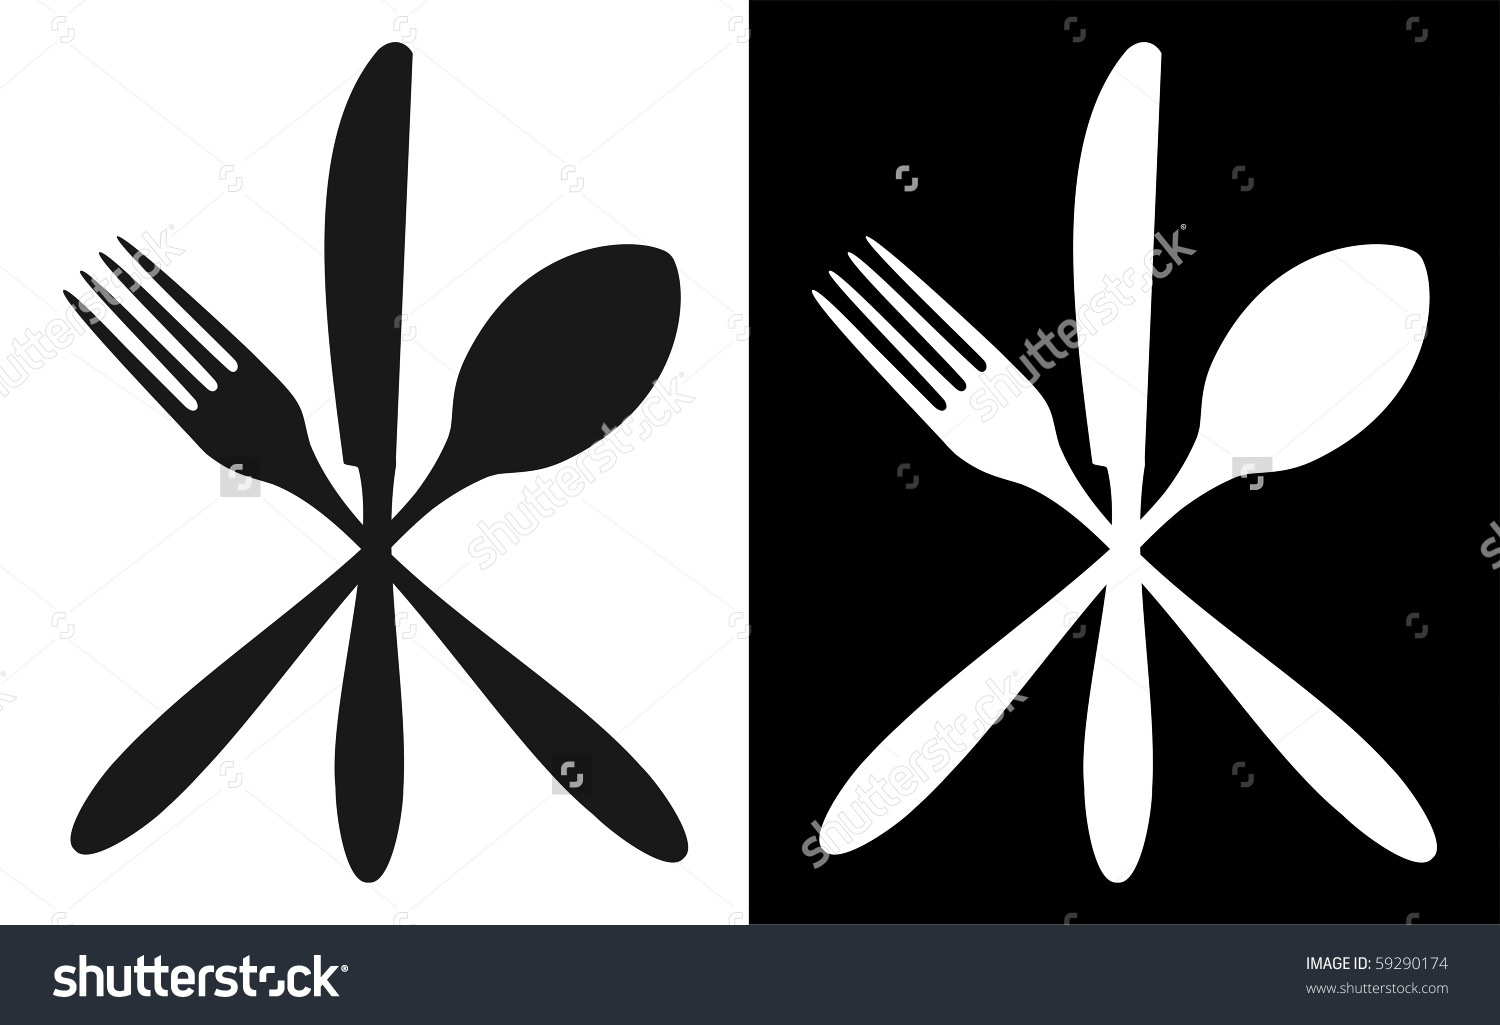 Cutlery Icons Fork Knife Spoon Silhouettes Stock Vector 59290174.